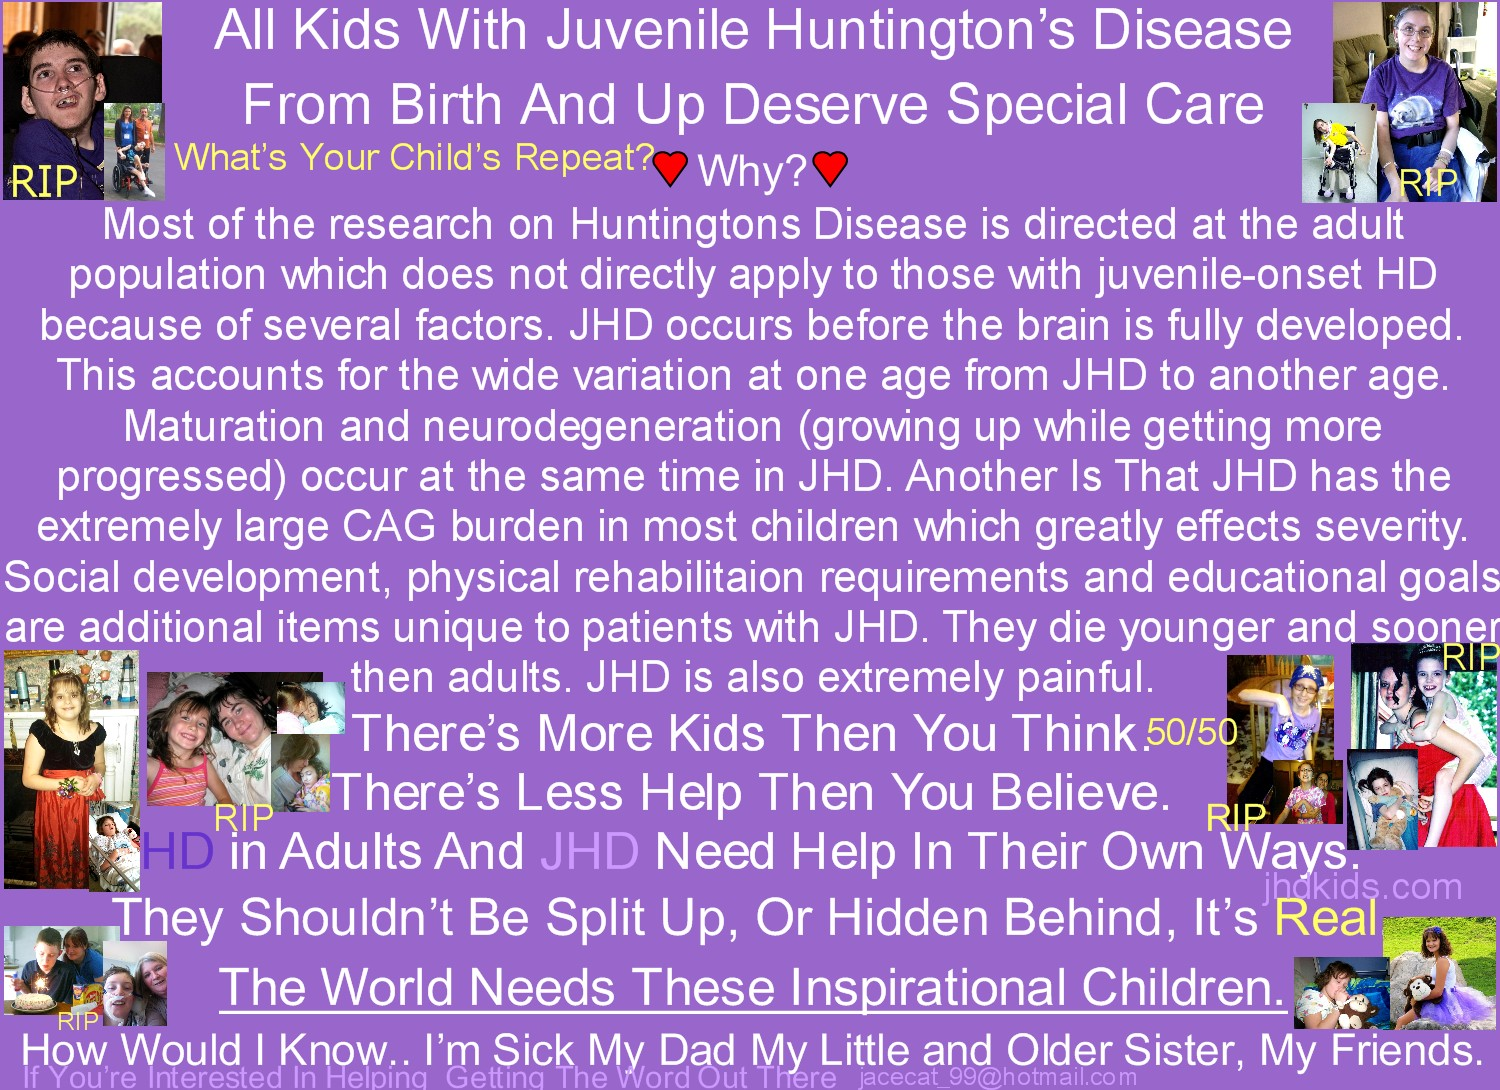 Resources Learn More About JHD